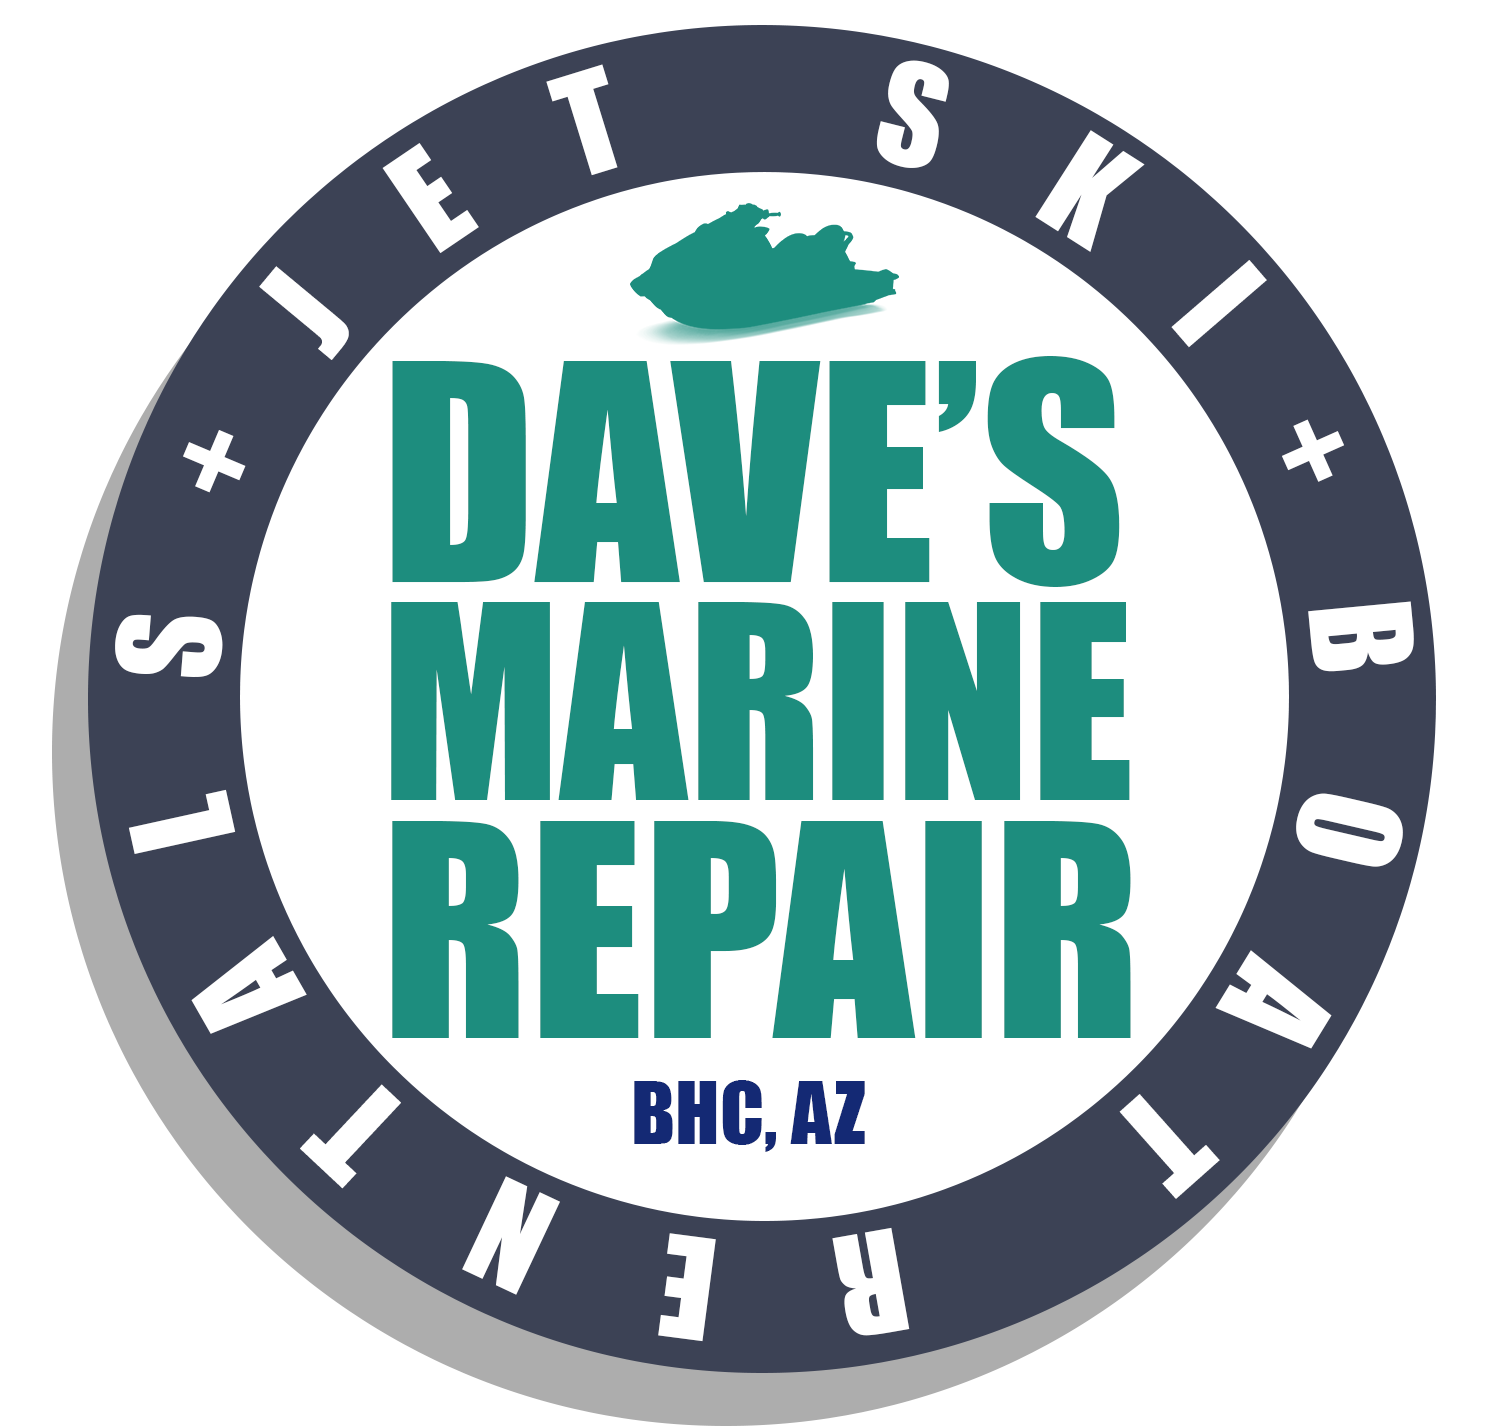 Dave's Marine Repair - Jet Ski and Boat Rental